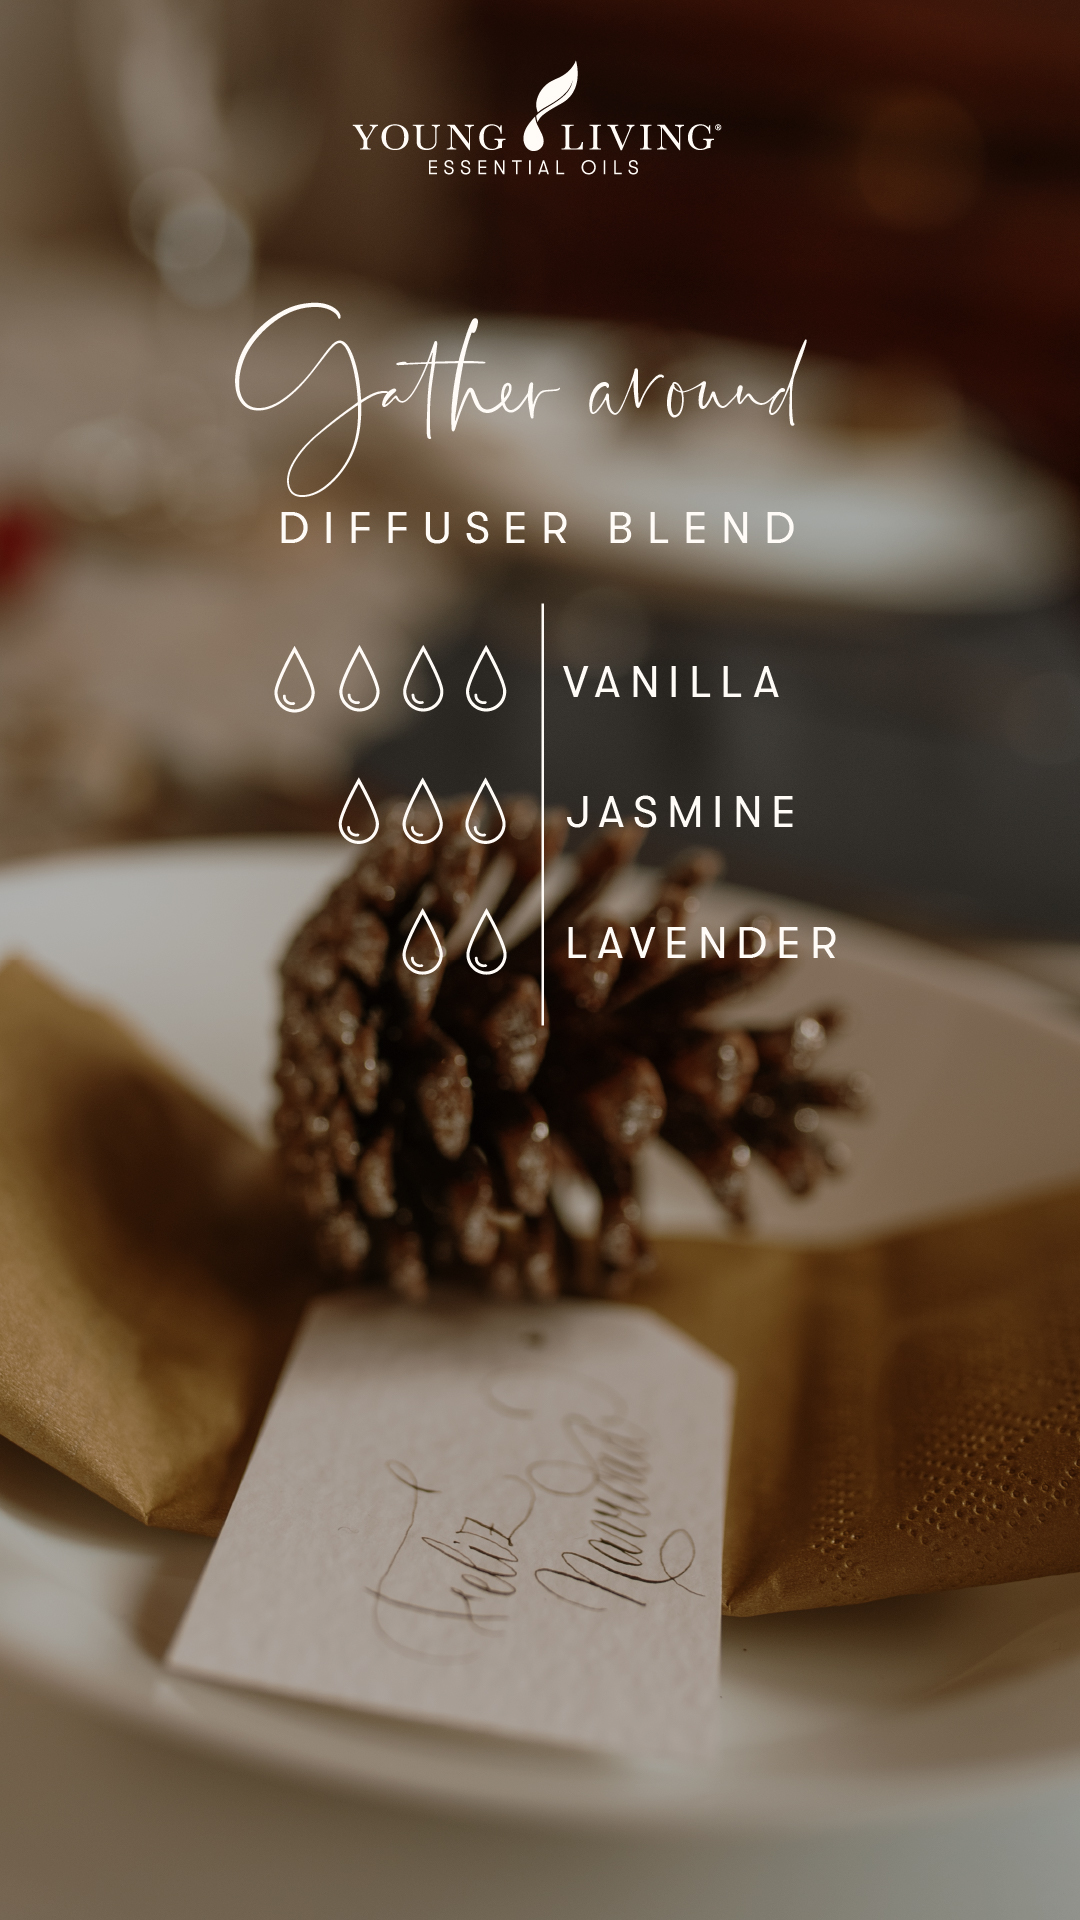 Young Living Holiday Diffuser Blend - Gather Round